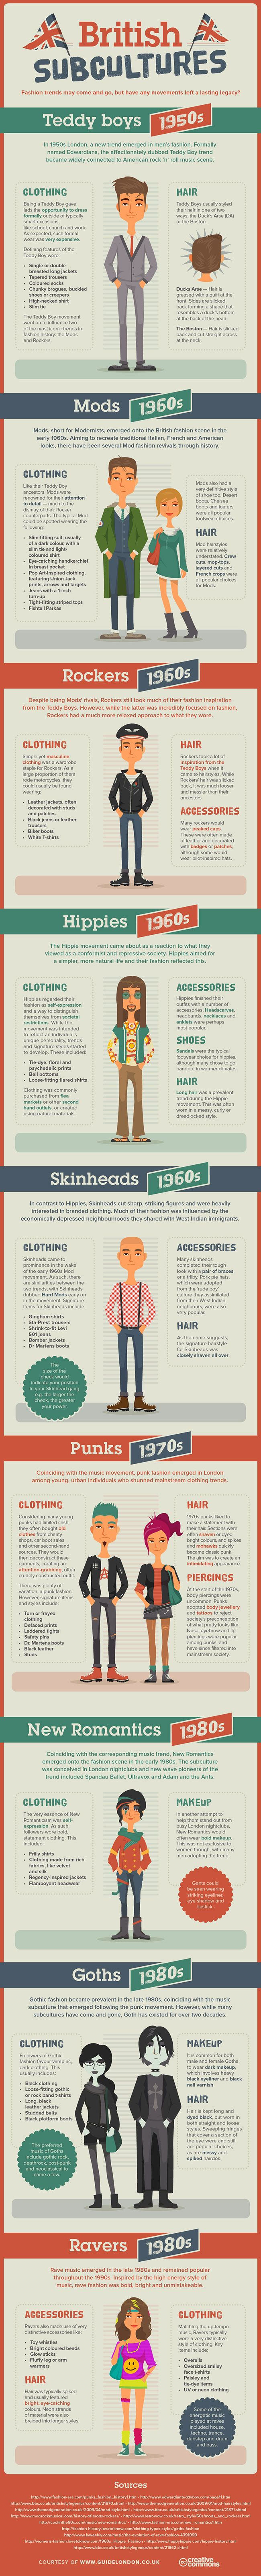 Guide London Explores History of British Fashion #style #infographic The only thing with this is that skinheads were about in the 70's/ 80's not the 60's